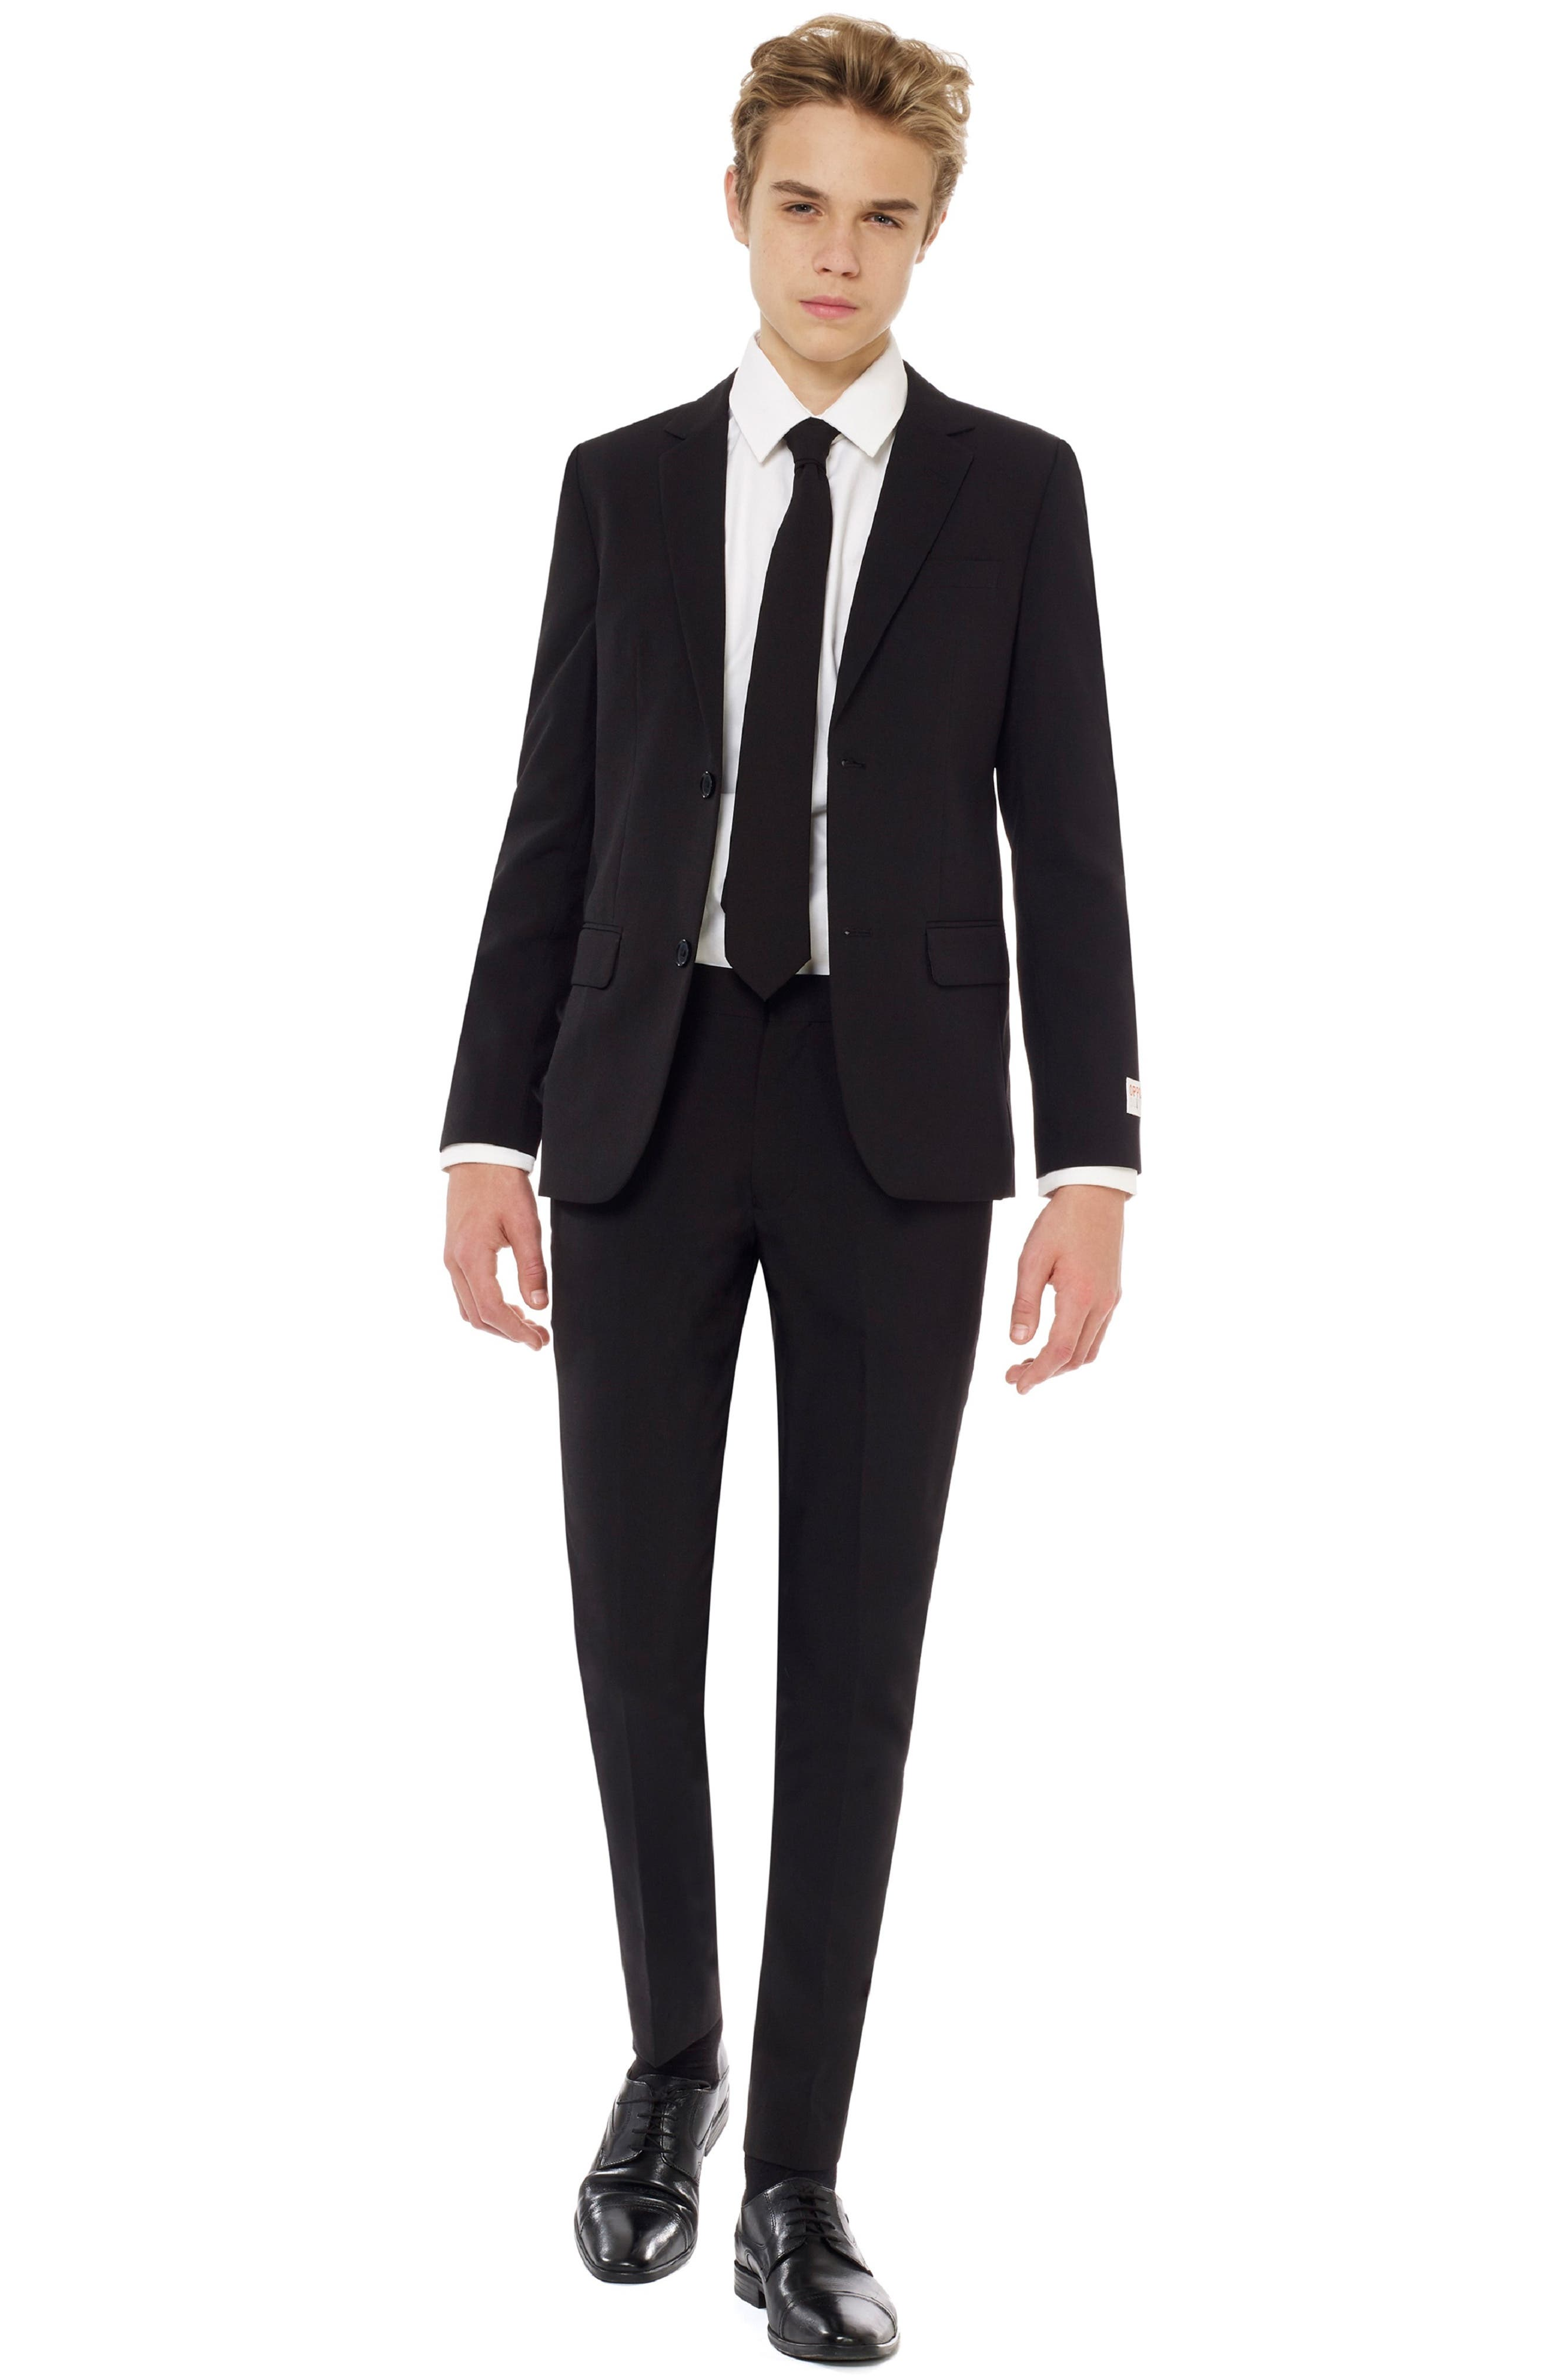 Black Knight Two-Piece Suit with Tie,                         Main,                         color, 011